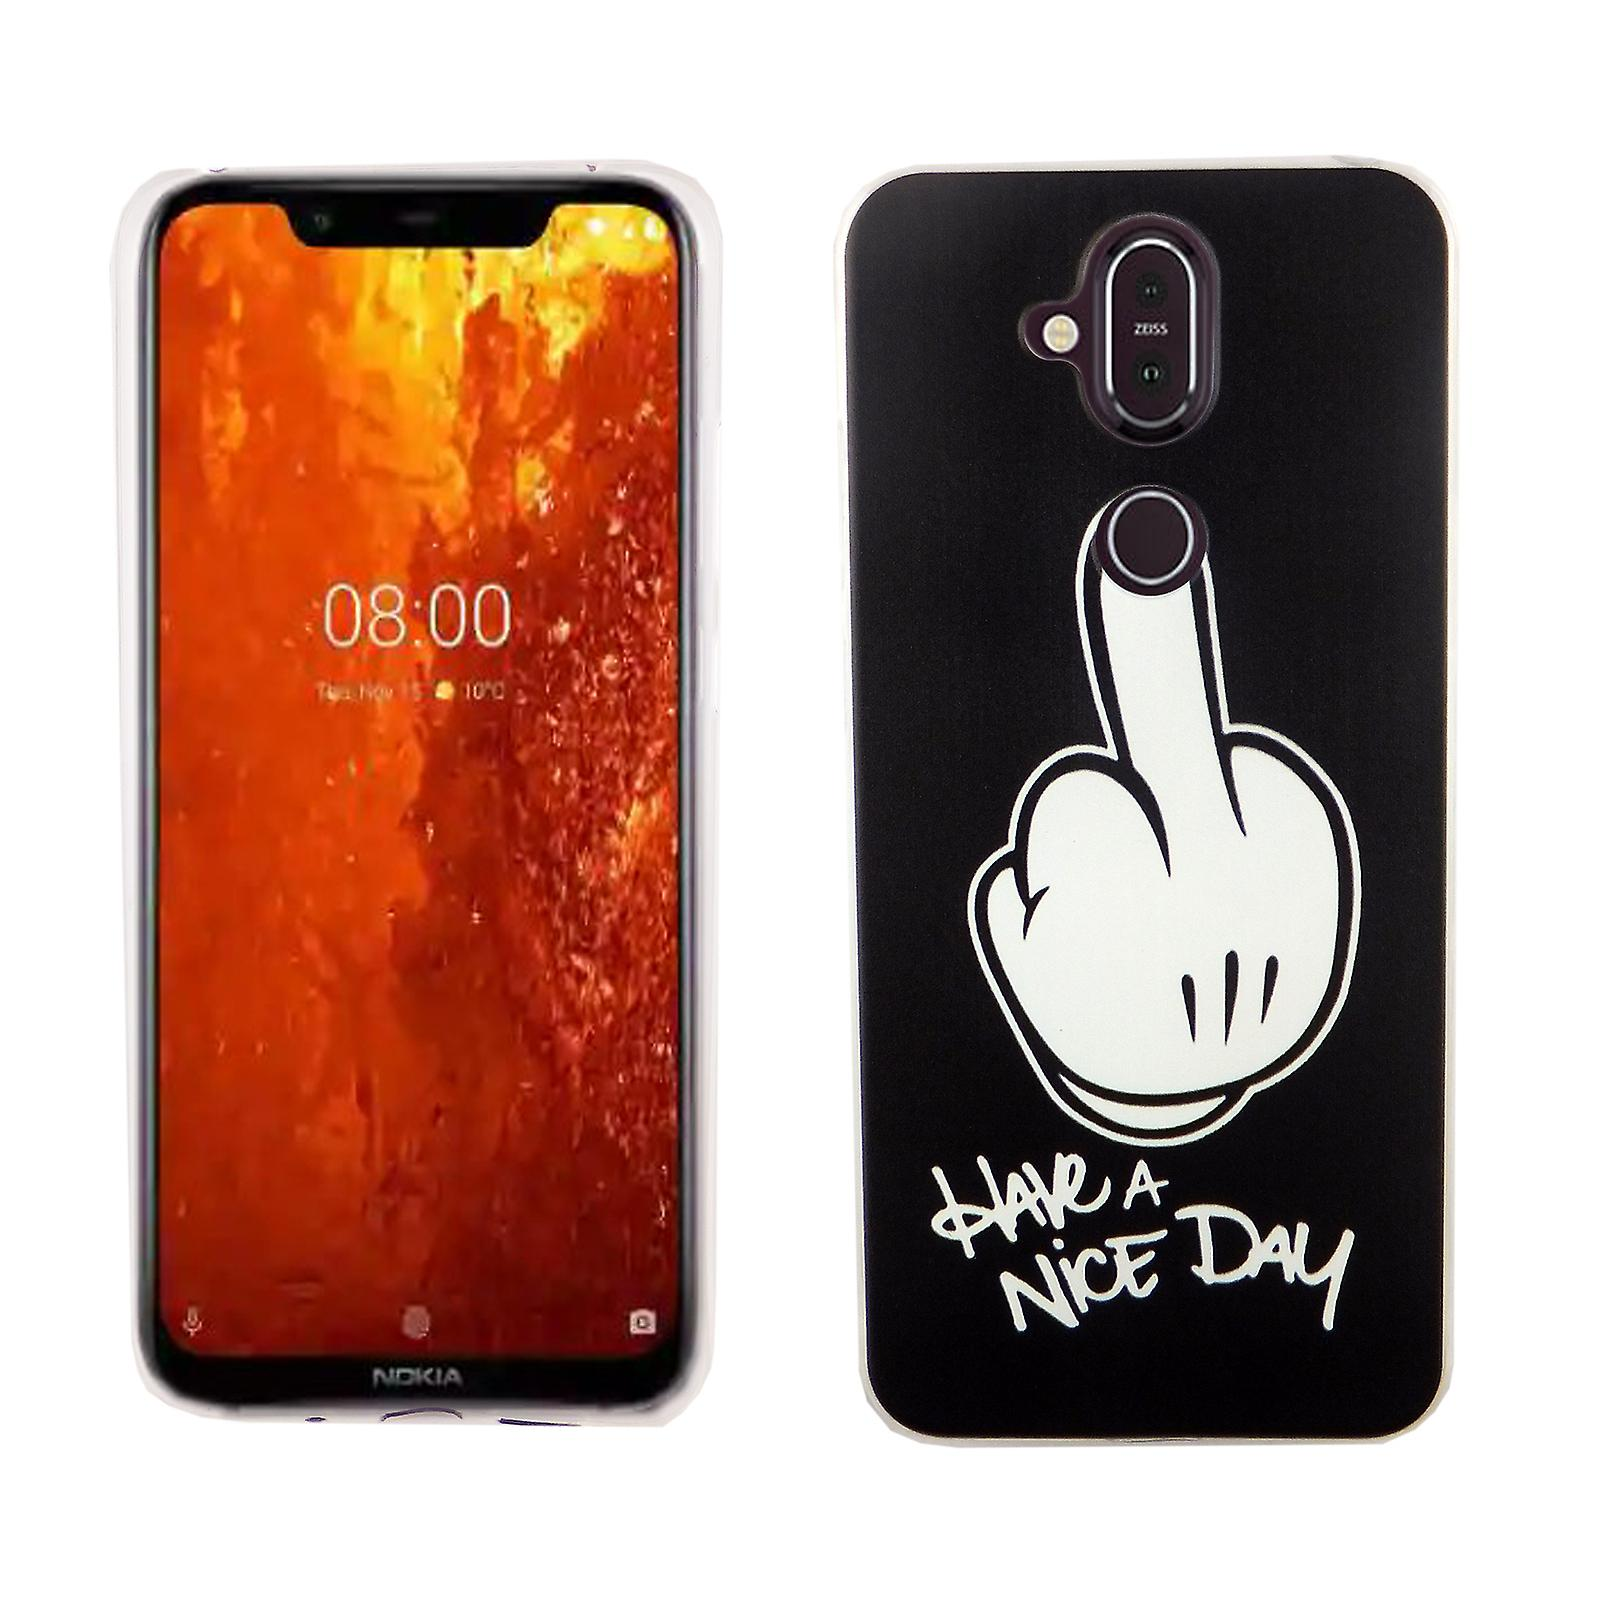 cheap for discount f0fb9 c09ce Nokia 8.1 / Nokia X 7 King-shop mobile-cover protective case cover bumper  have a nice day